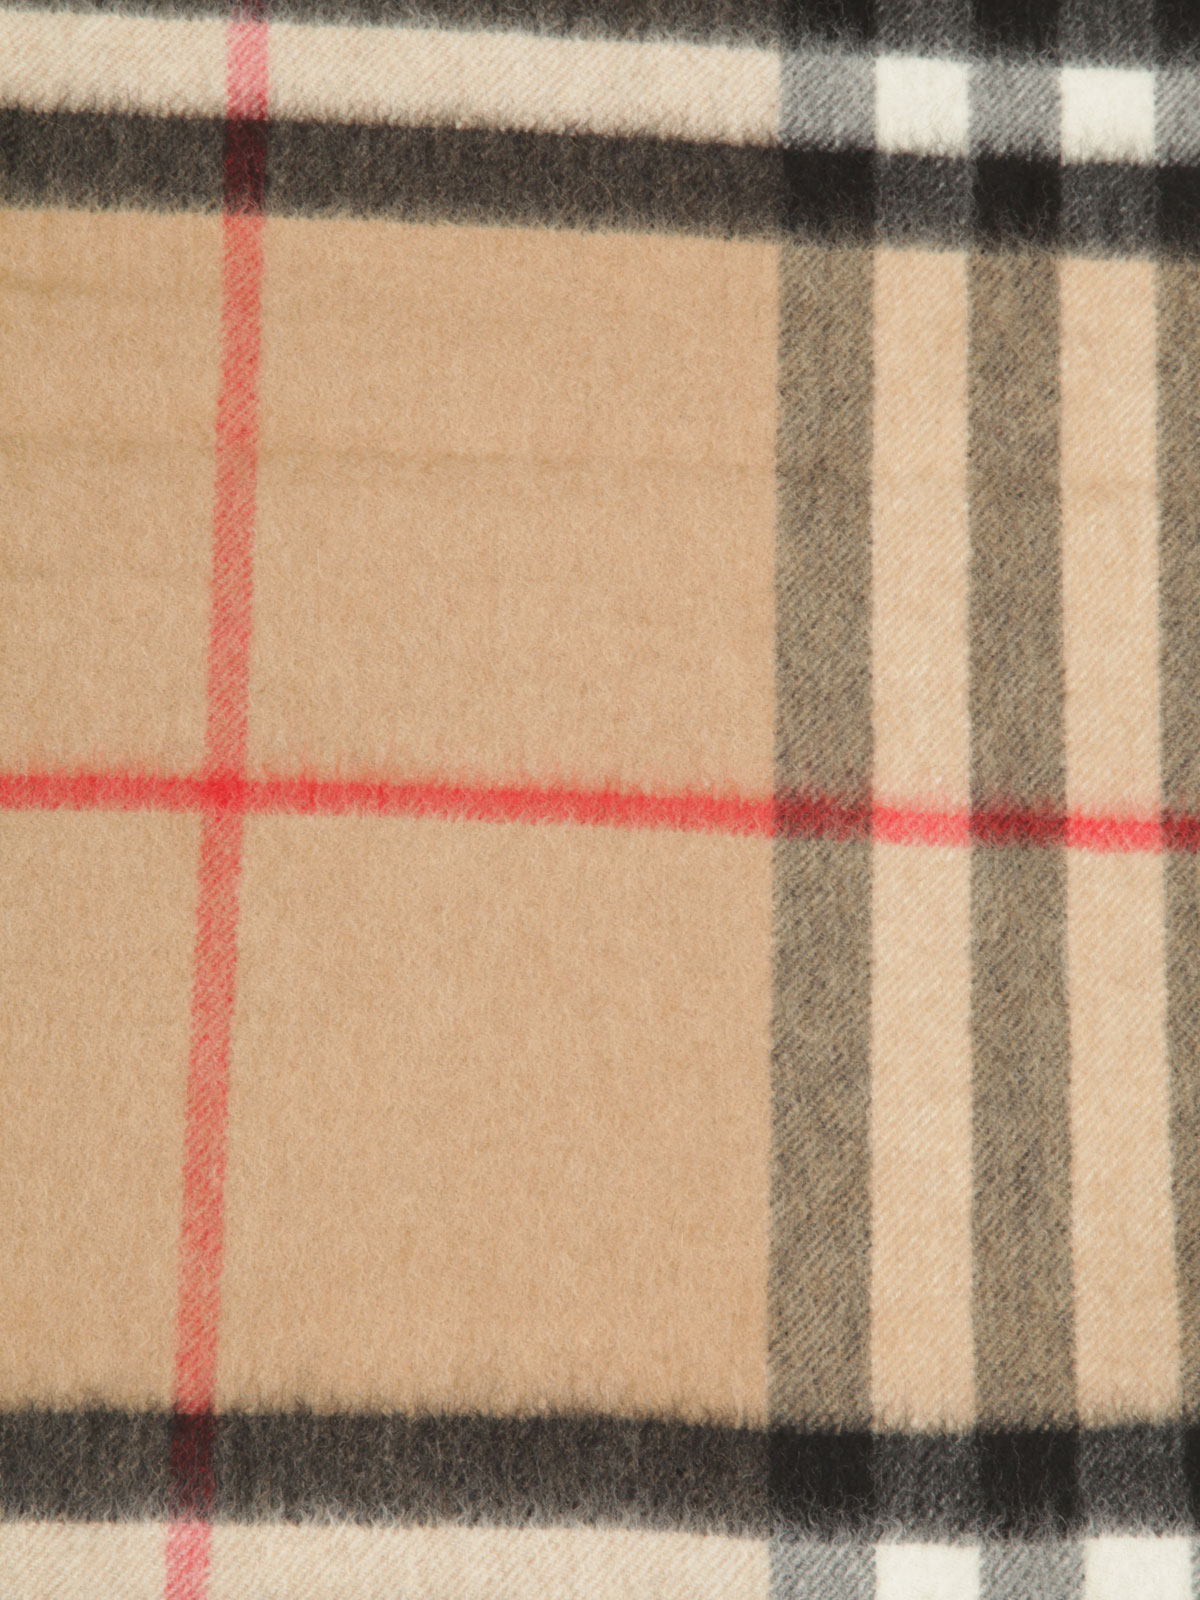 1d9e422f0caa Burberry - Heritage Check Cashmere Scarf - scarves - 3929522